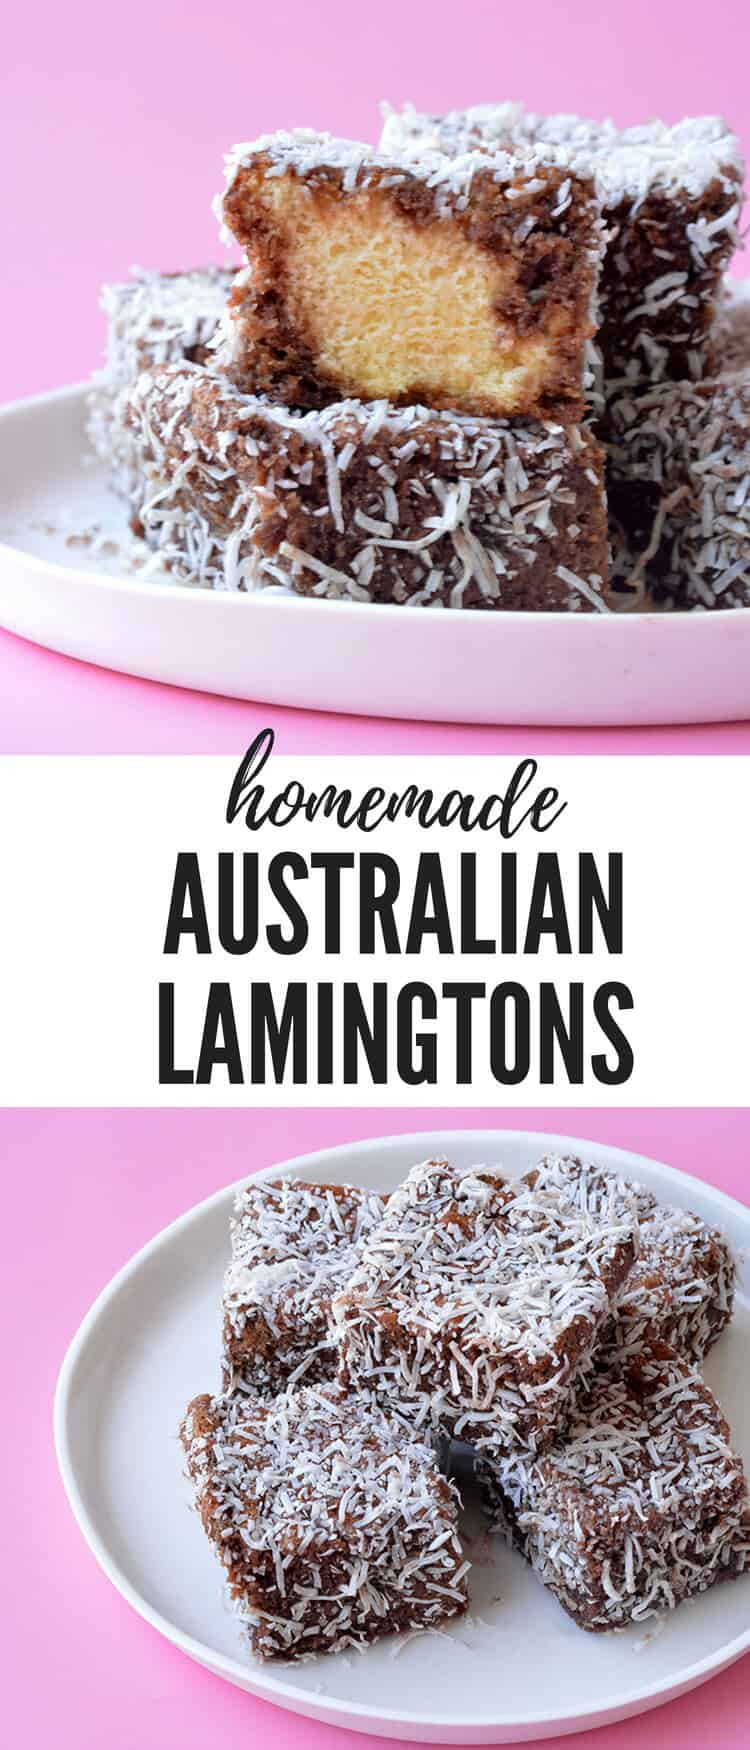 Learn how to make gorgeous homemade Lamingtons from scratch. This gorgeous Australia sponge cake is dipped in chocolate and covered in coconut - yum! Recipe from sweetestmenu.com #chocolate #coconut #cake #lamingtons